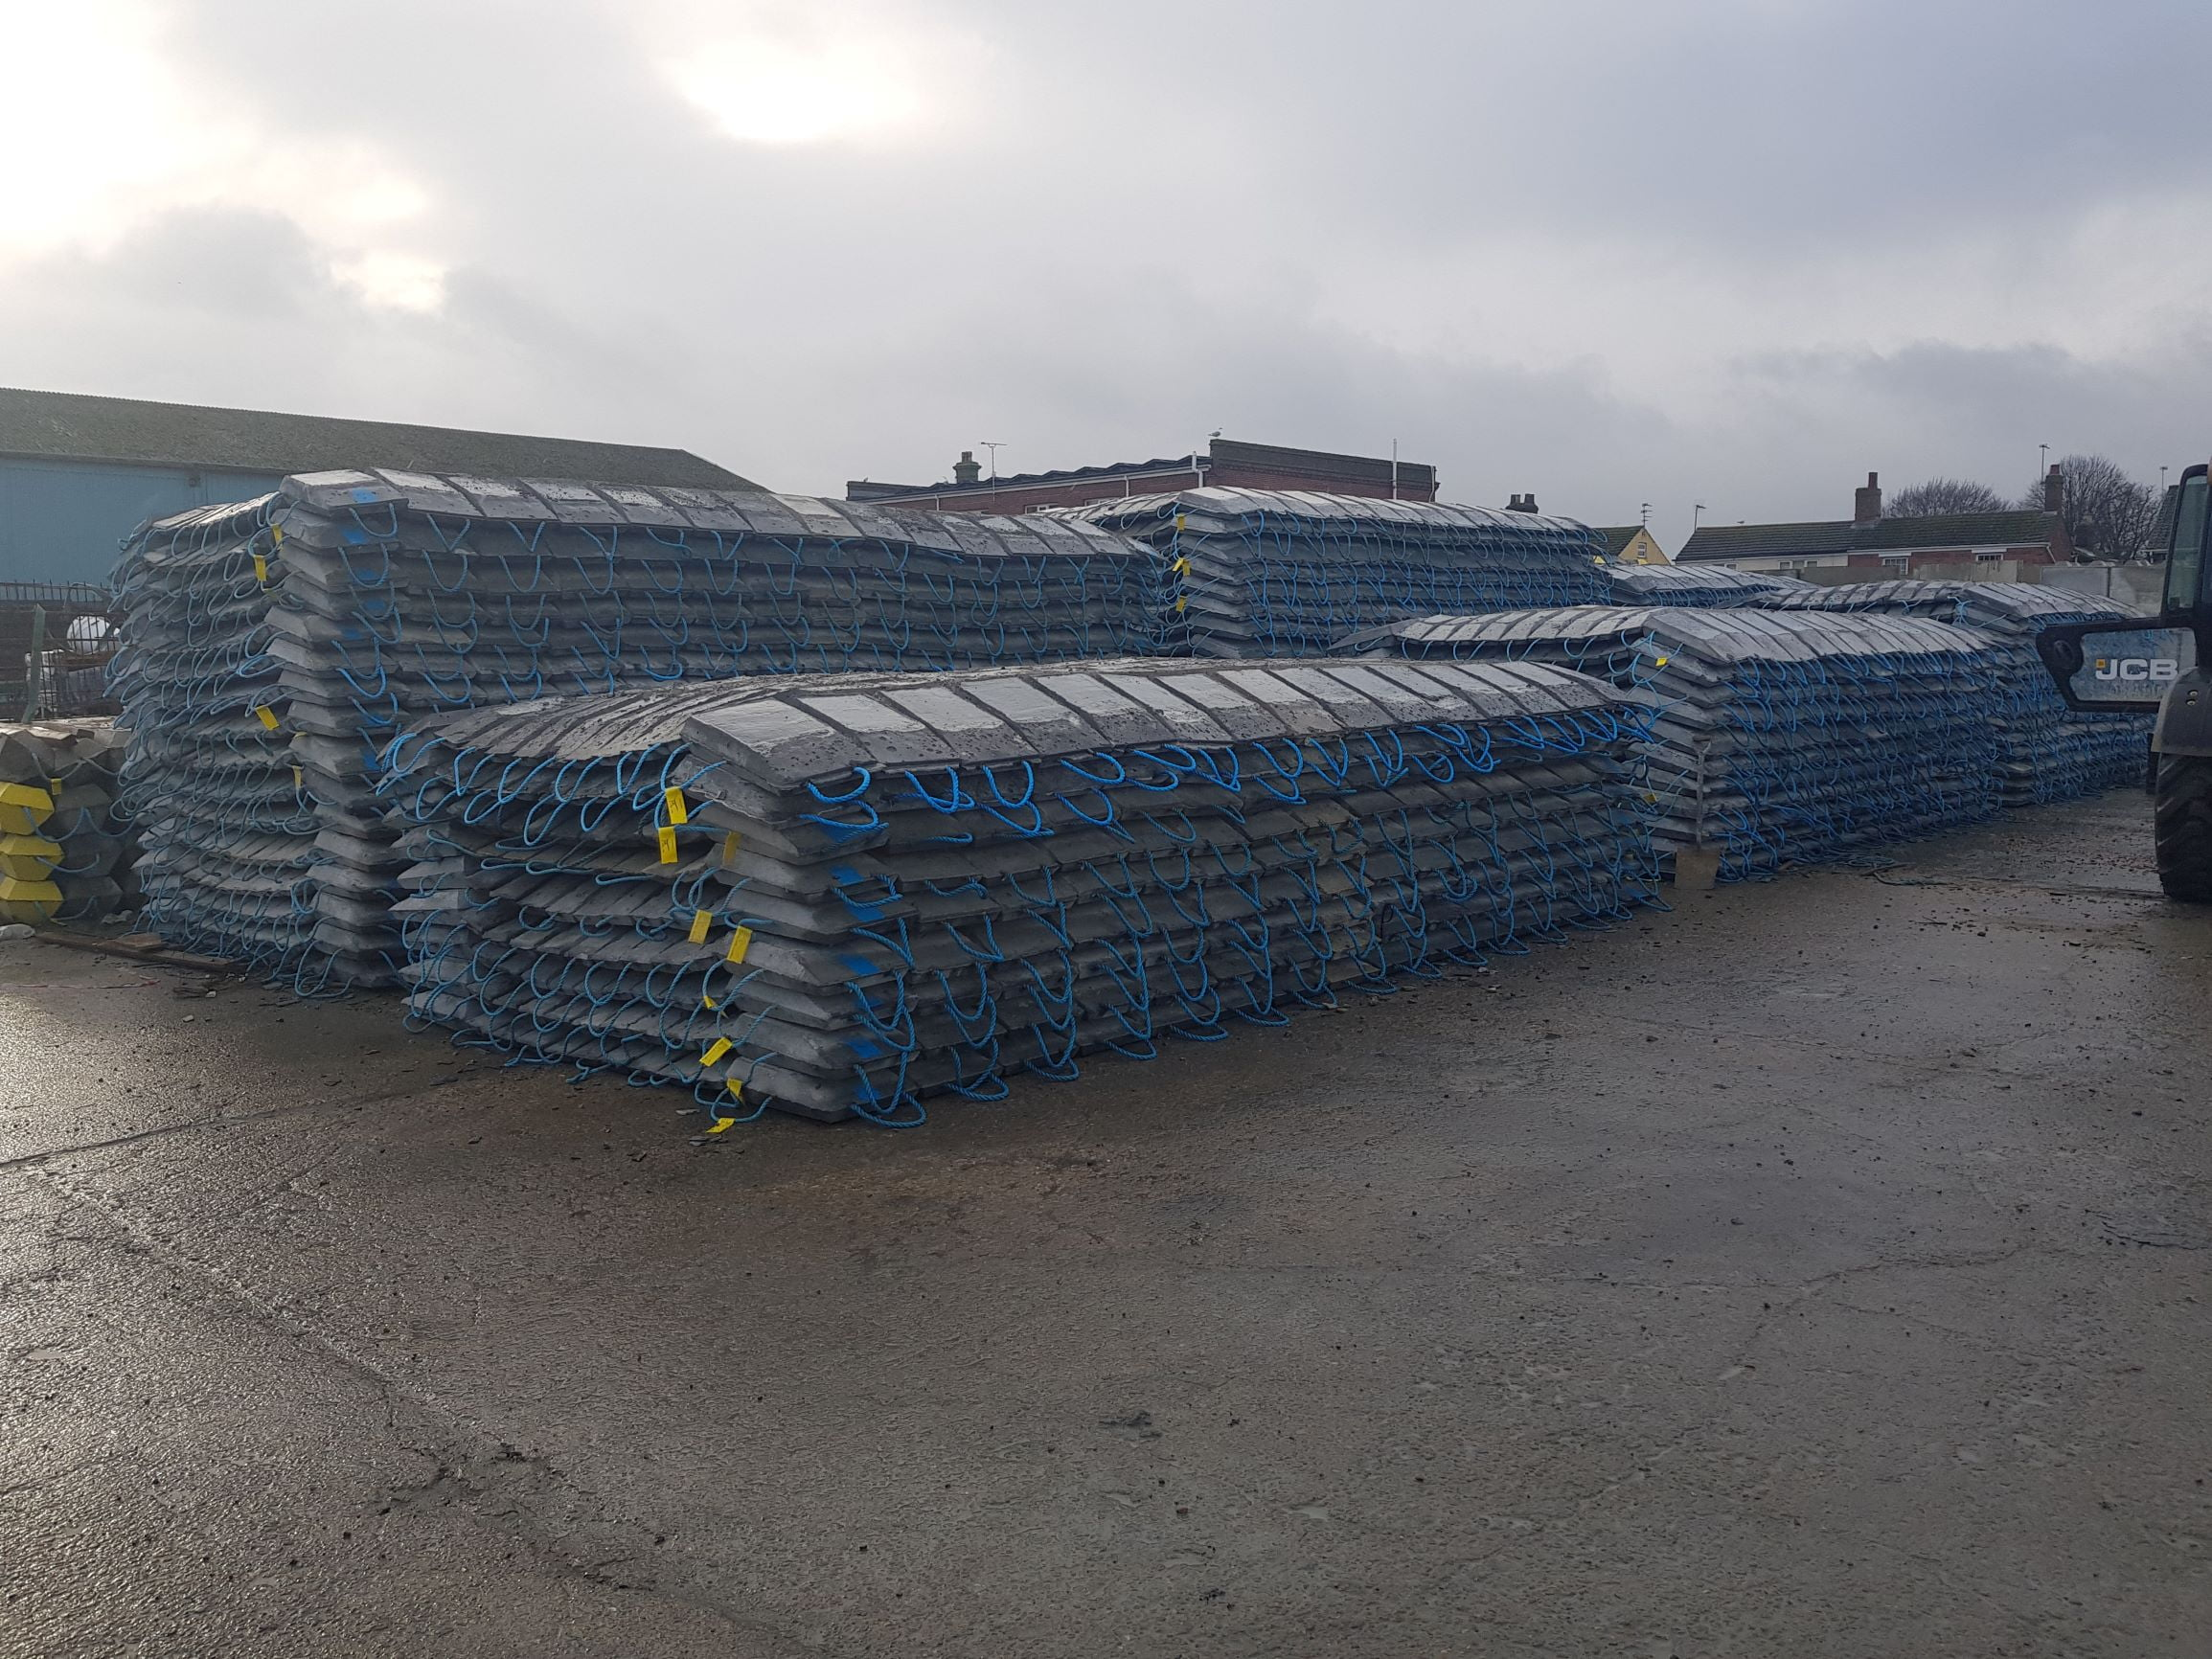 Flood defence scour protection mattresses constructed with high density concrete for stabilising riverbeds